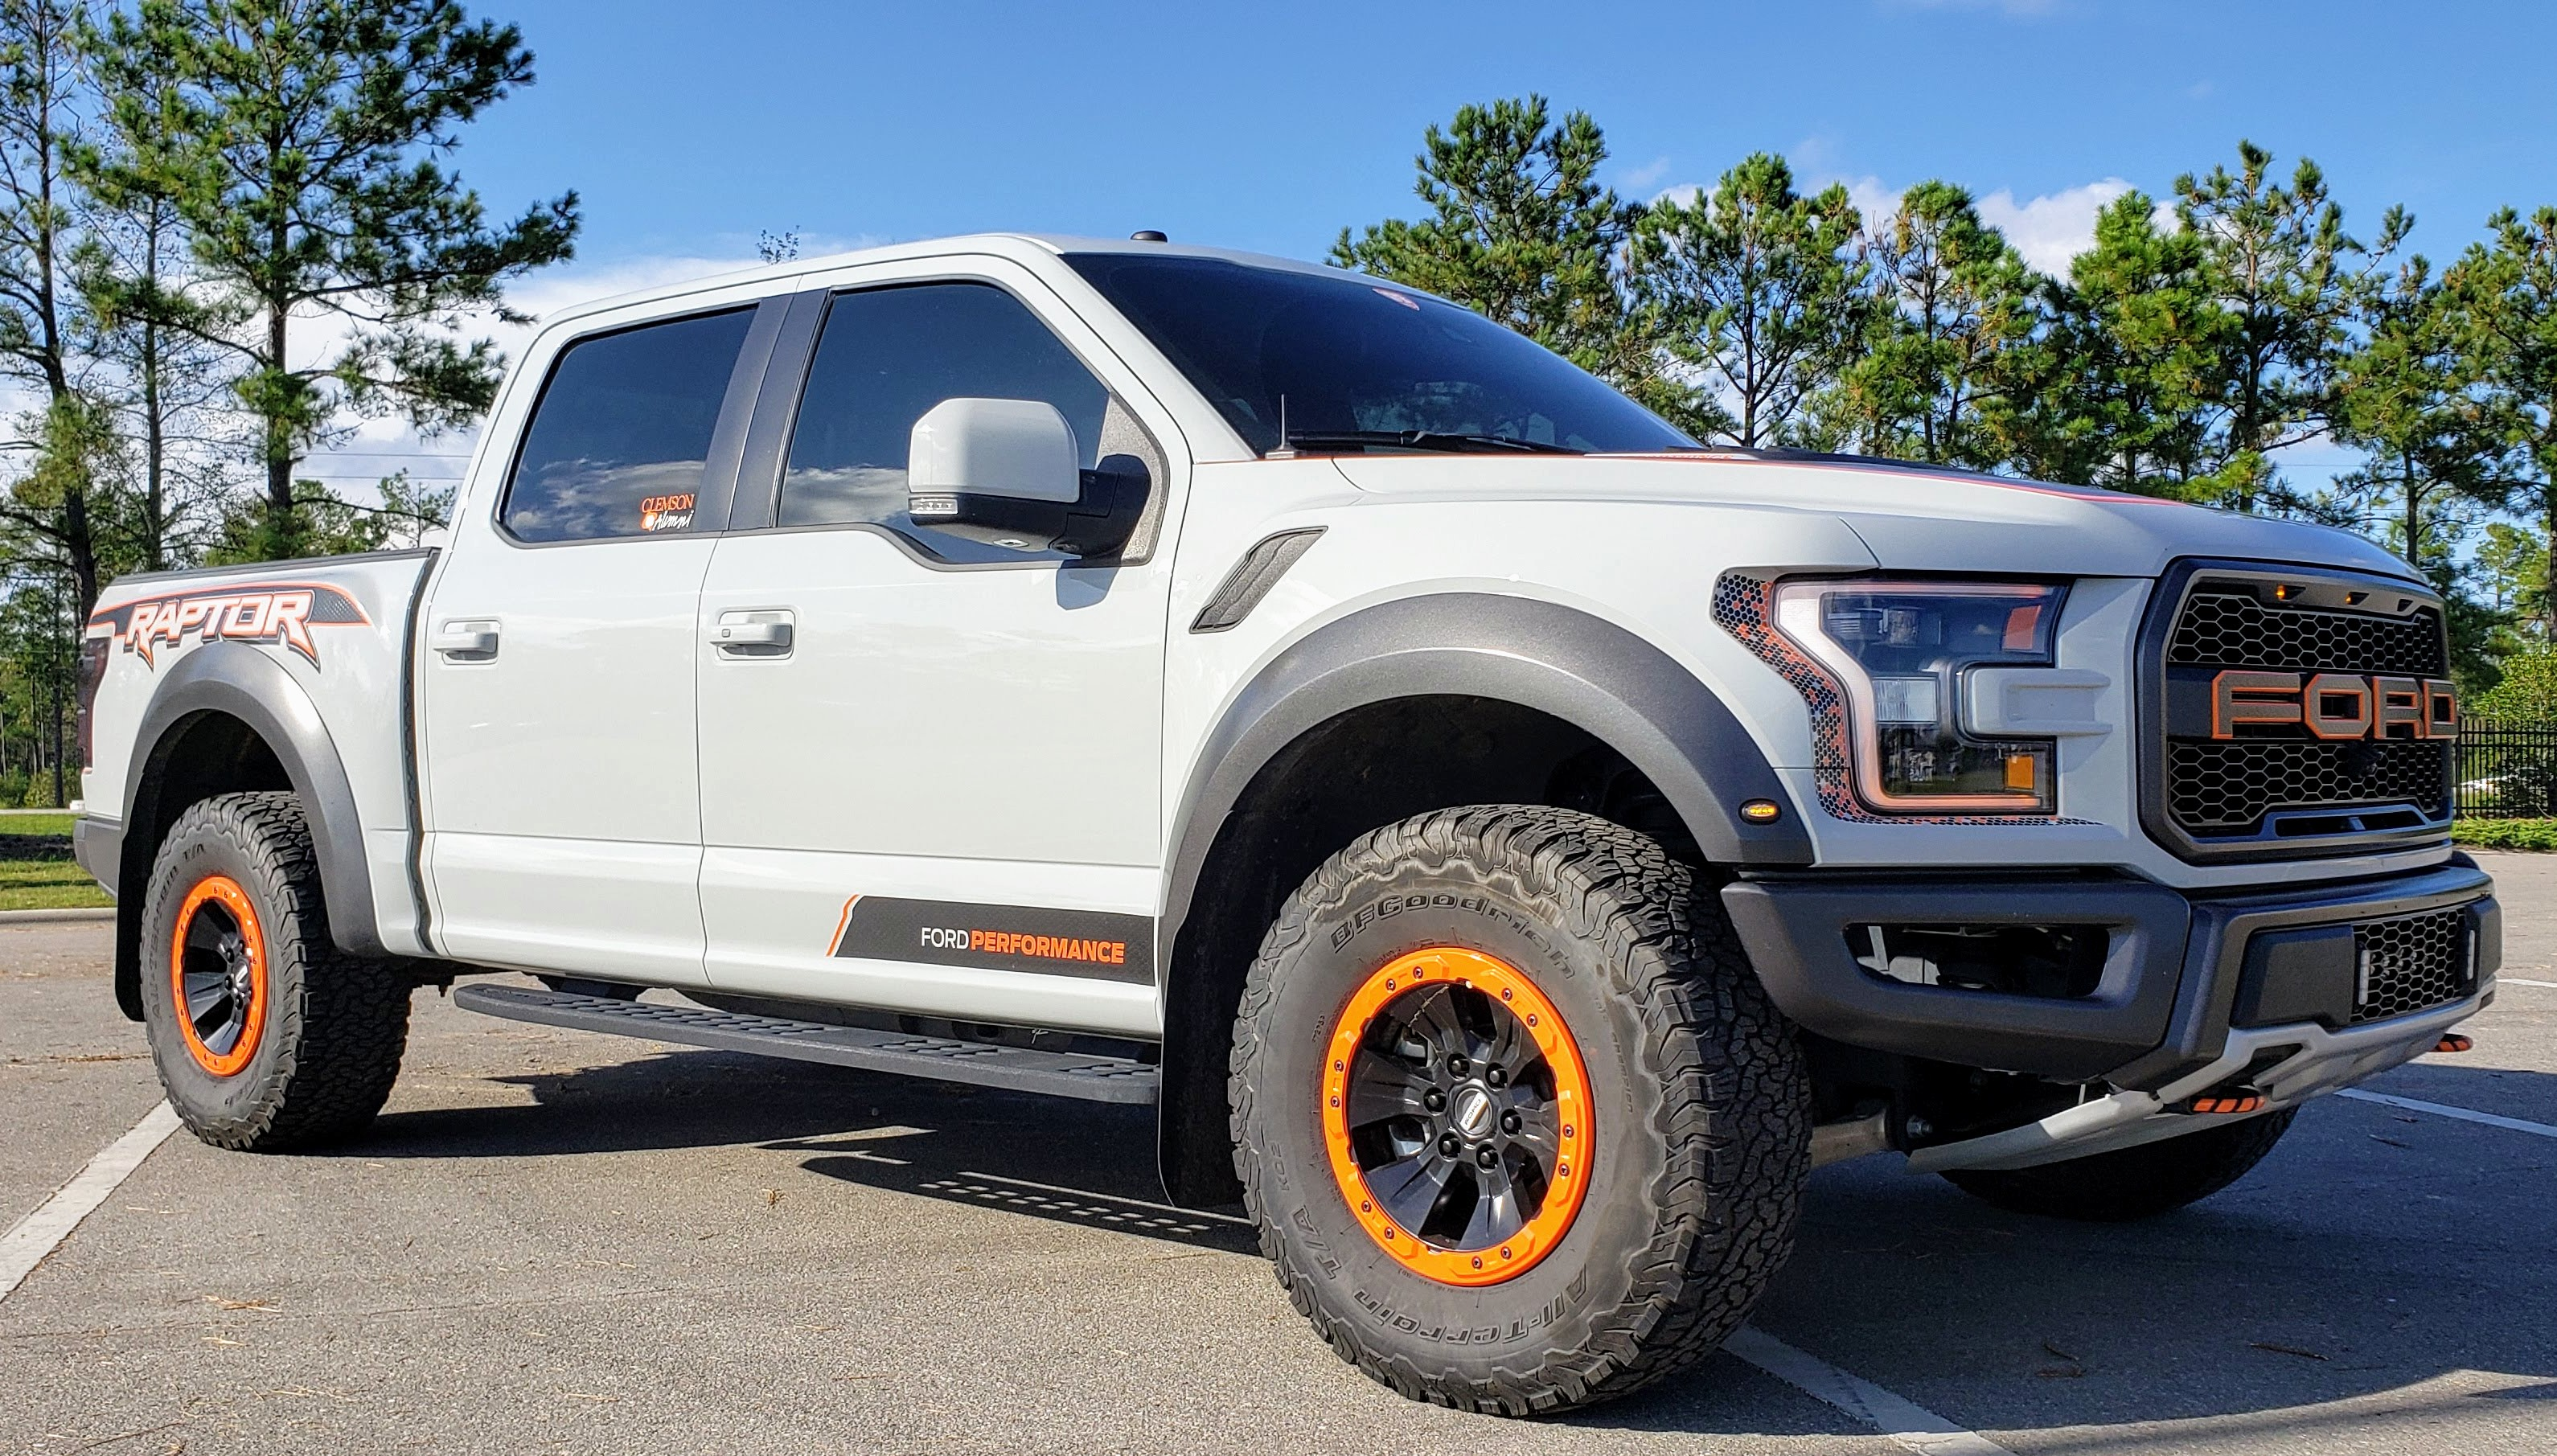 VLOG Review – Ford Raptor EcoBoost ECU Tuning by VR Tuned